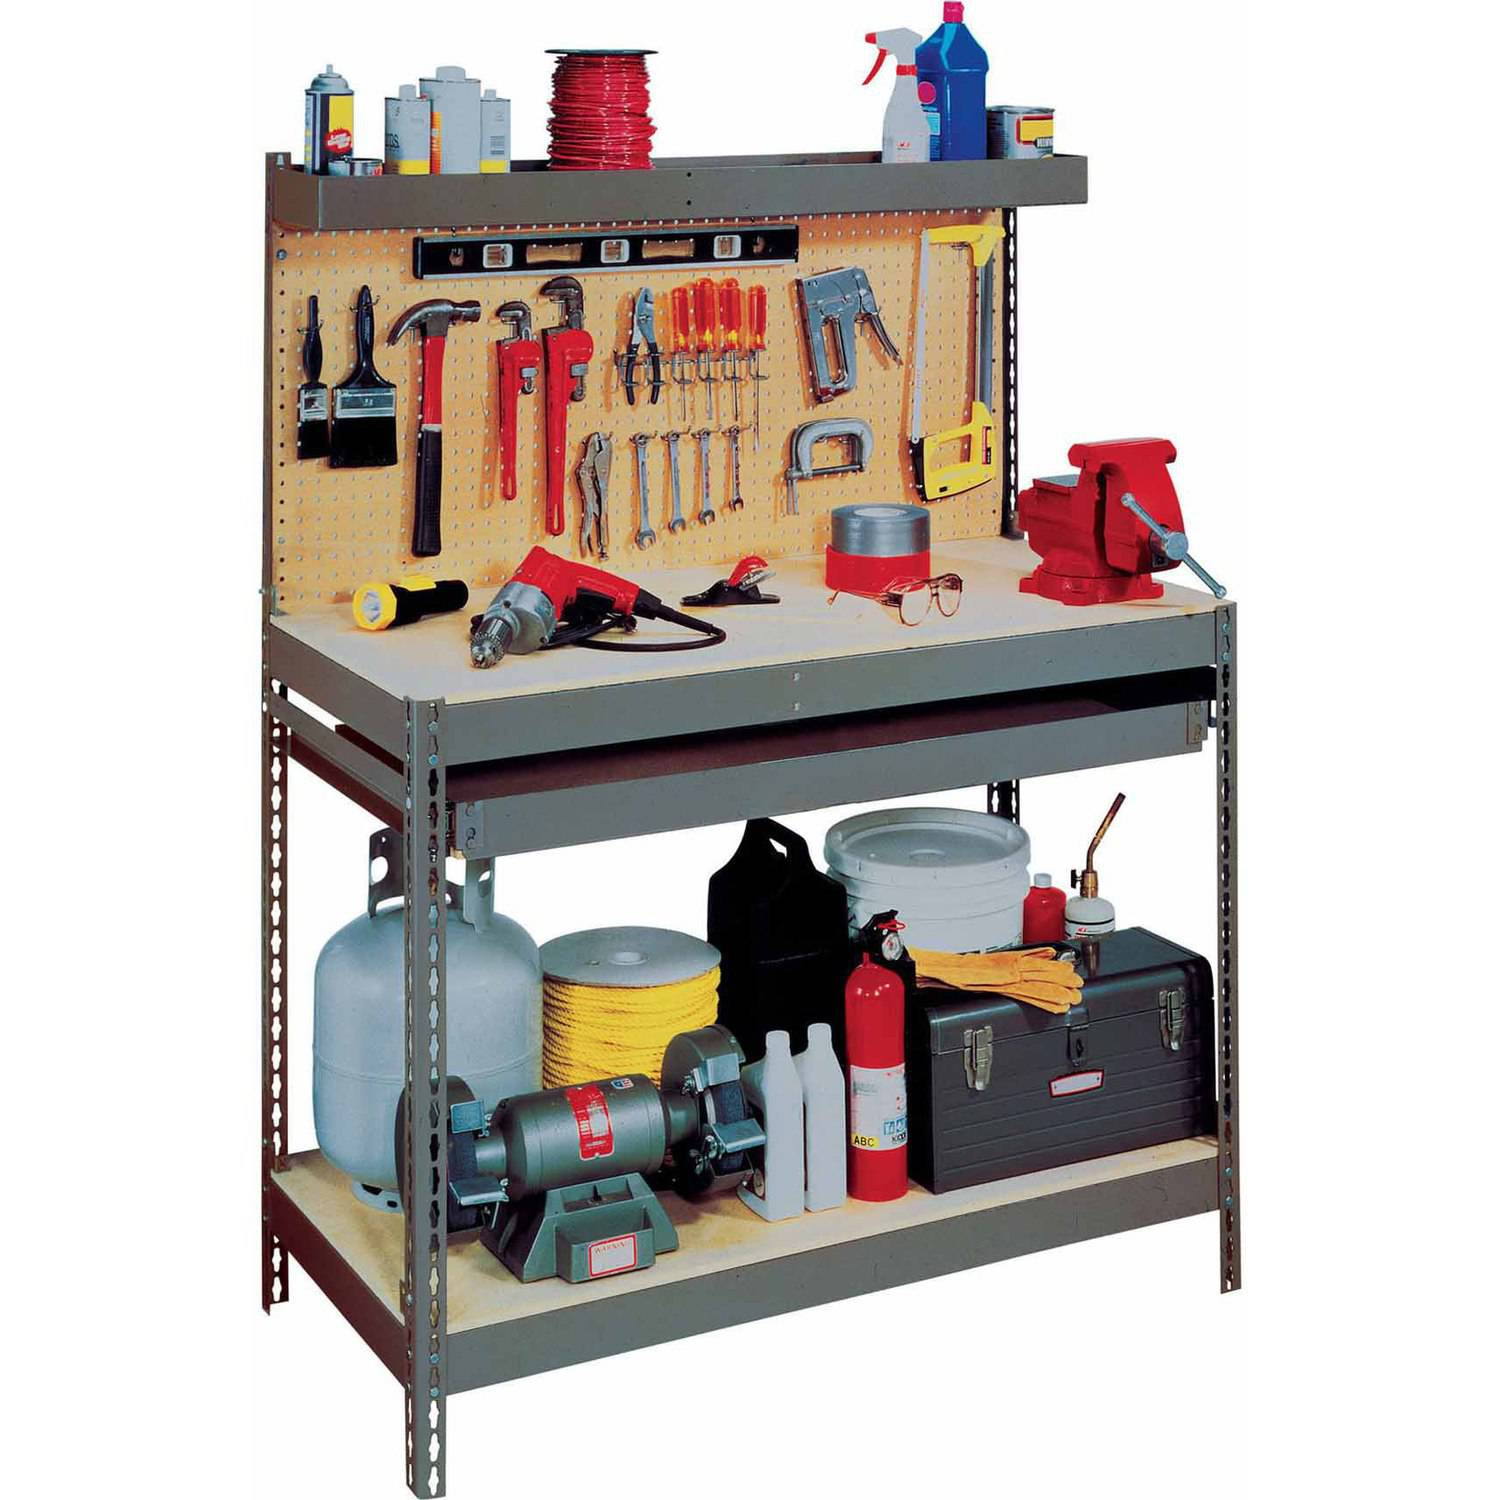 Wall Mounted Folding Workbench | Fold Down Workbench Plans | Fold Down Workbench Plans Free